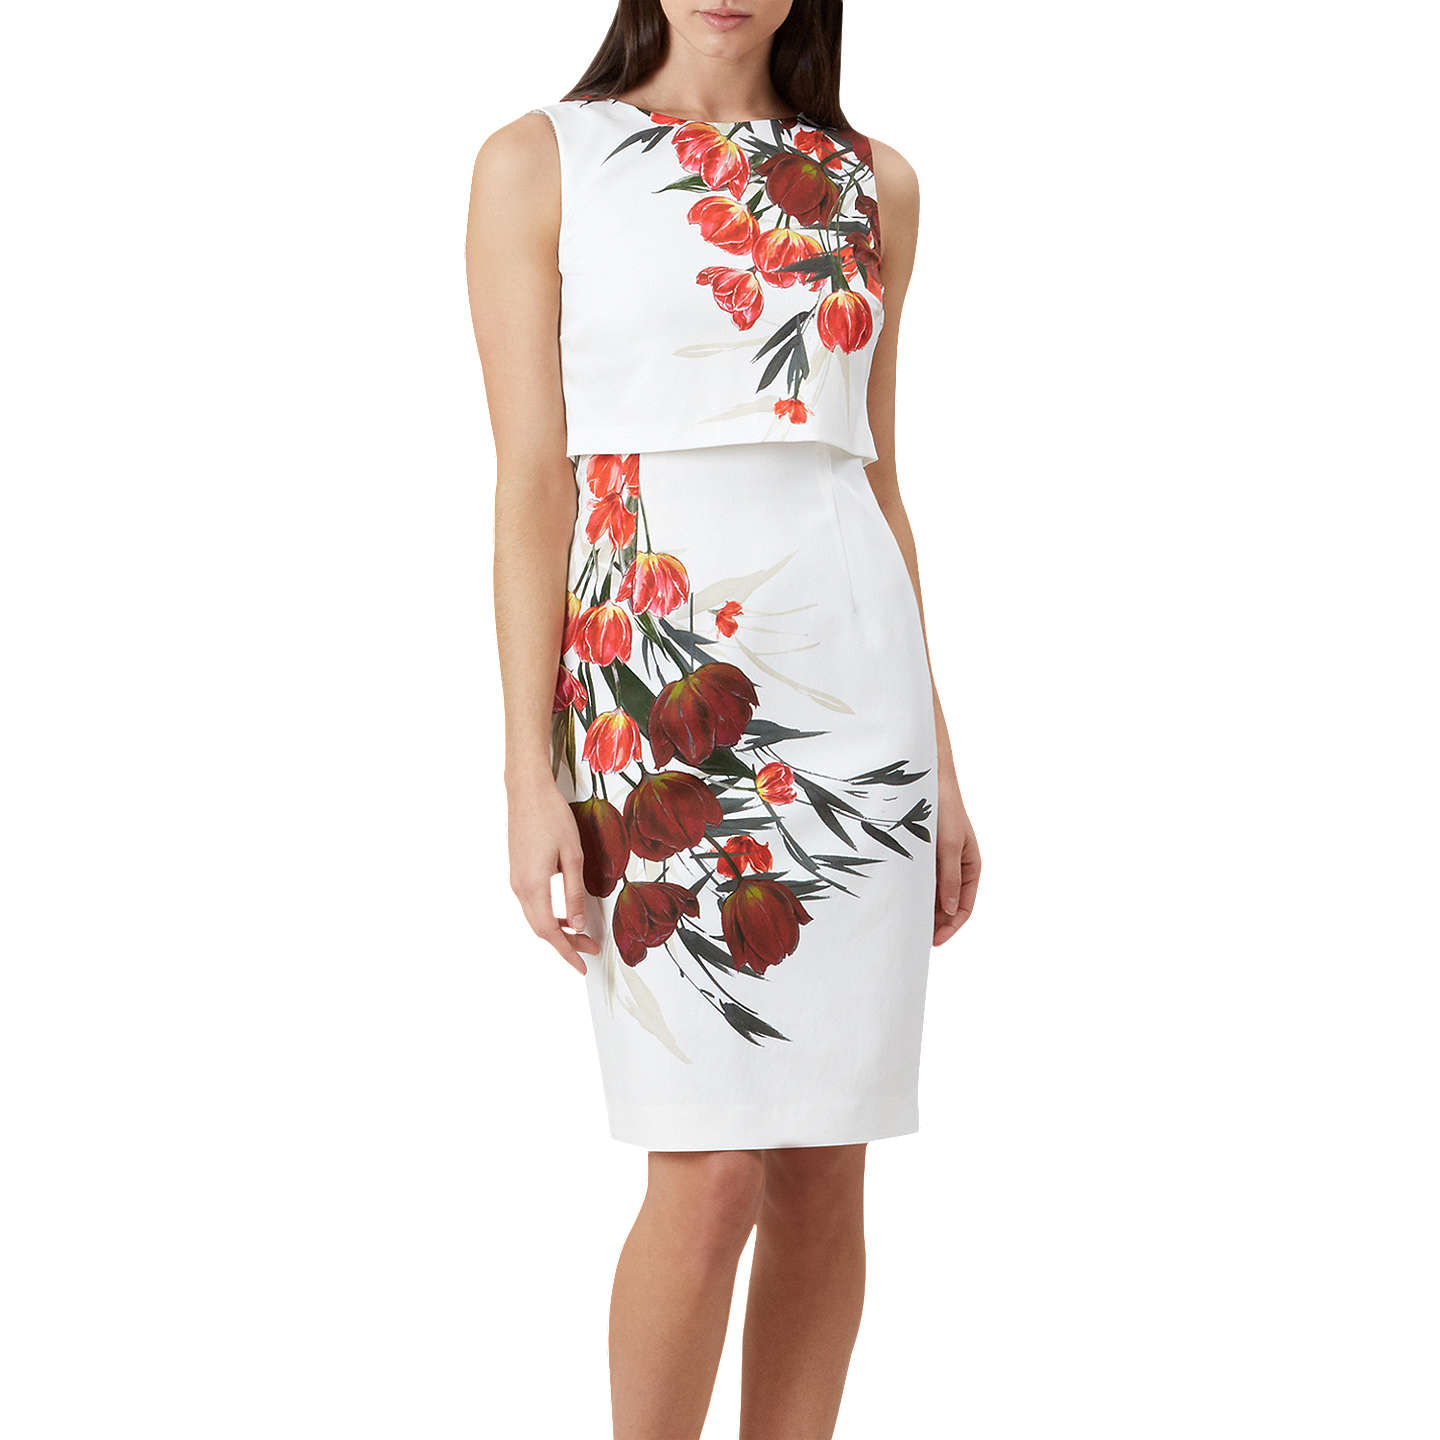 Hobbs Bree Floral Print Dress, Ivory/Multi by Hobbs